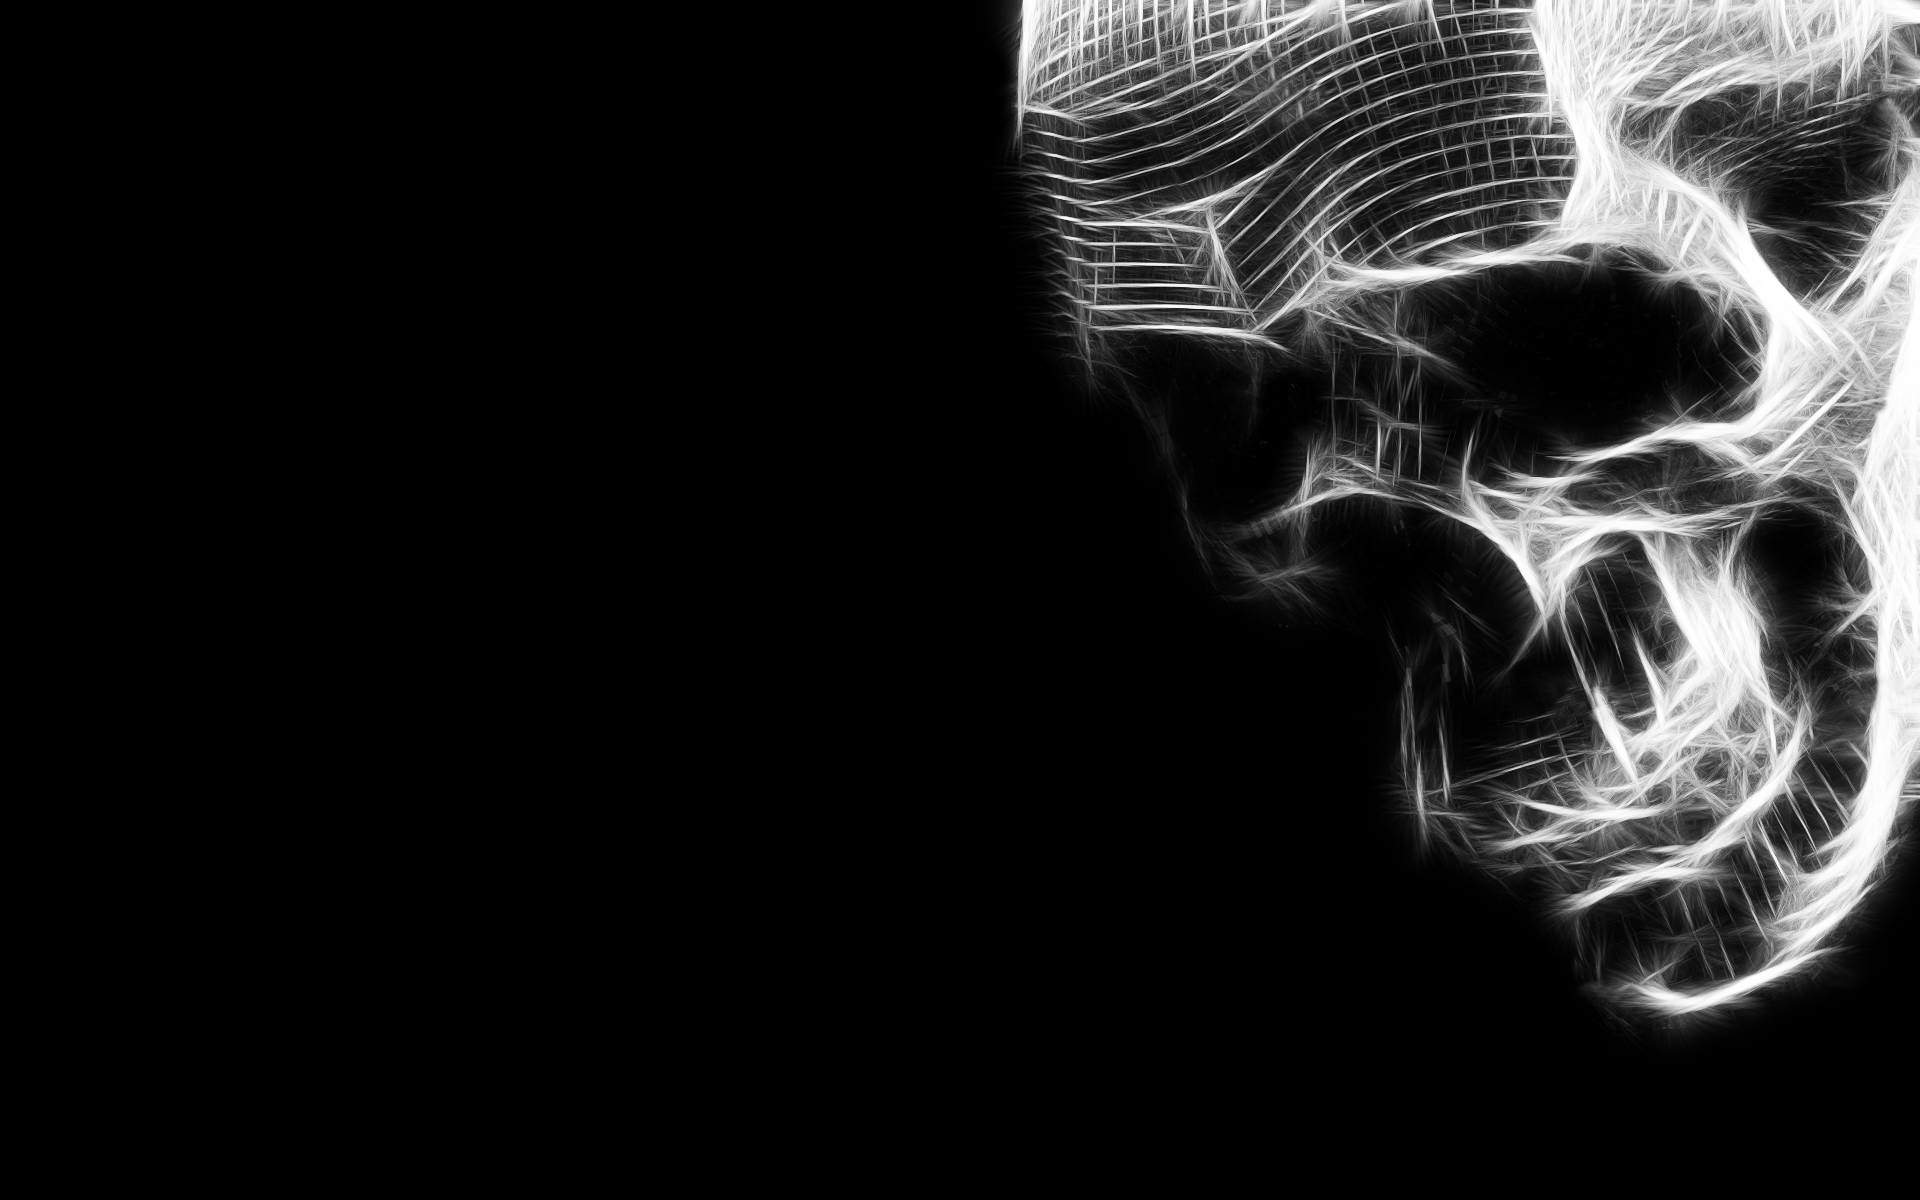 Skull Wallpapers - Full HD wallpaper